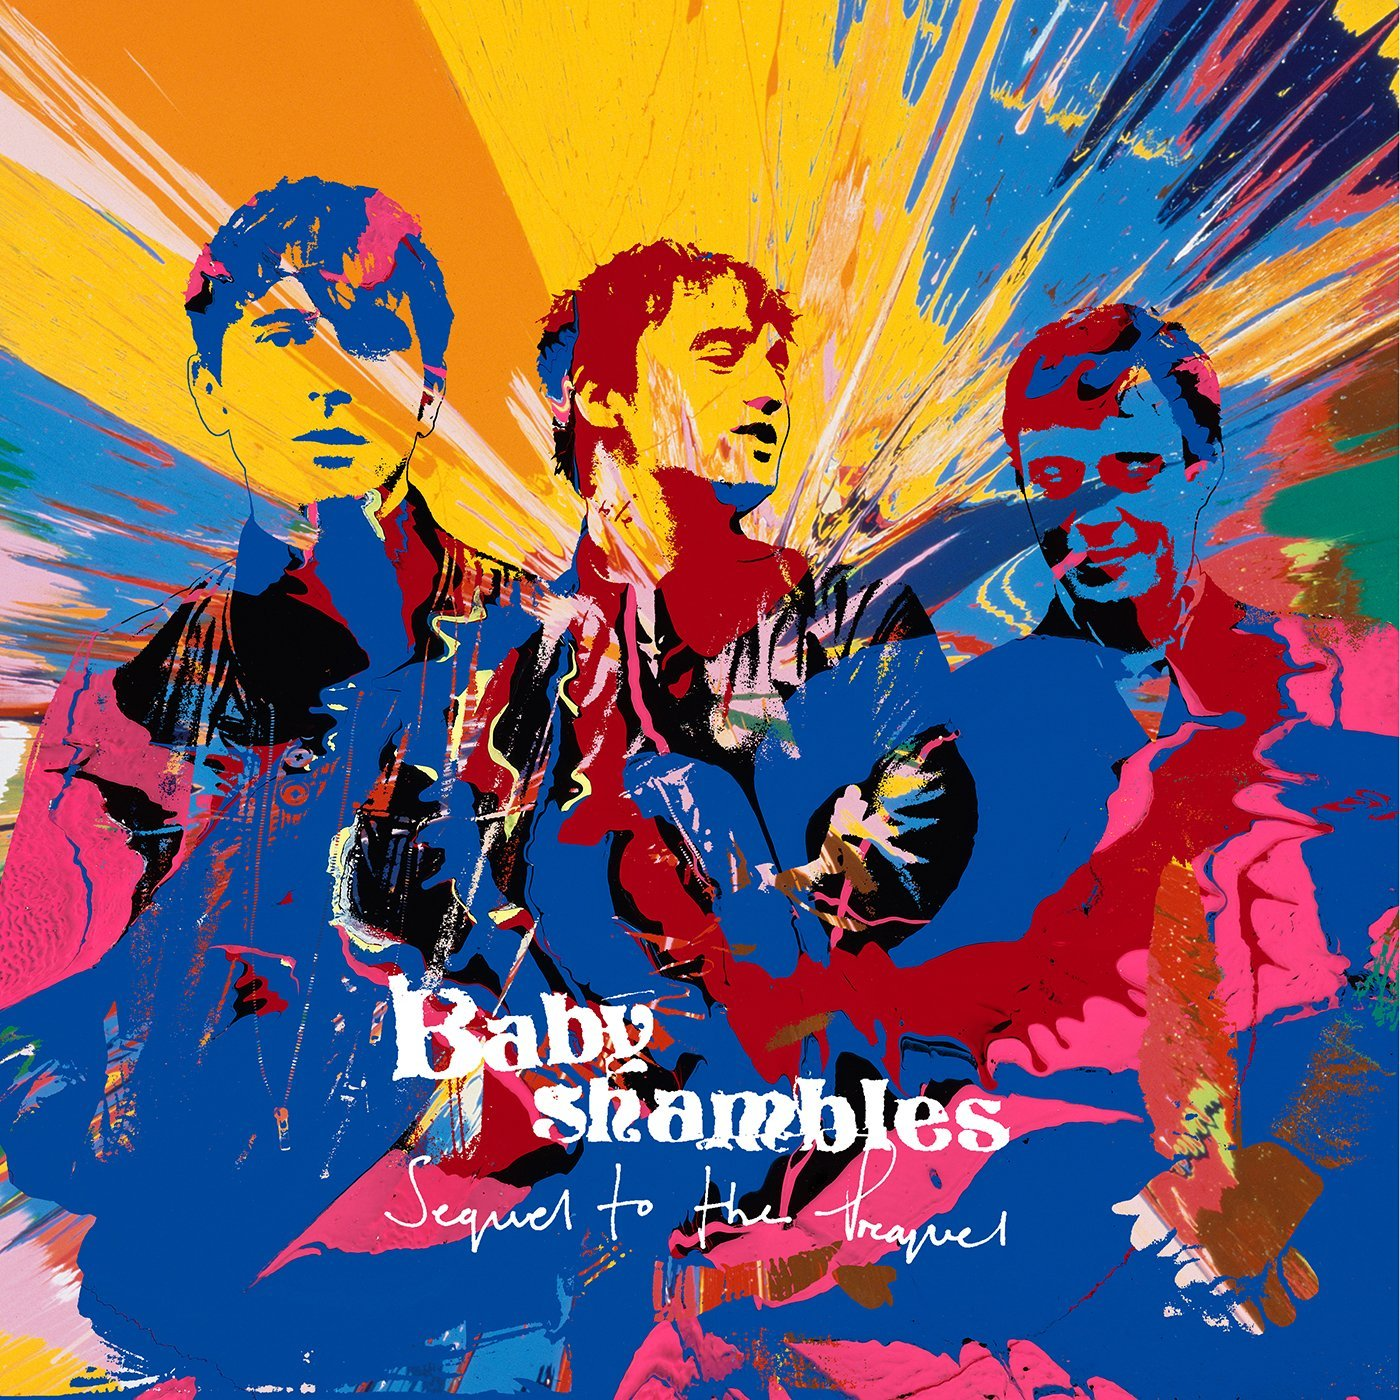 Sequel To The Prequel - Babyshambles